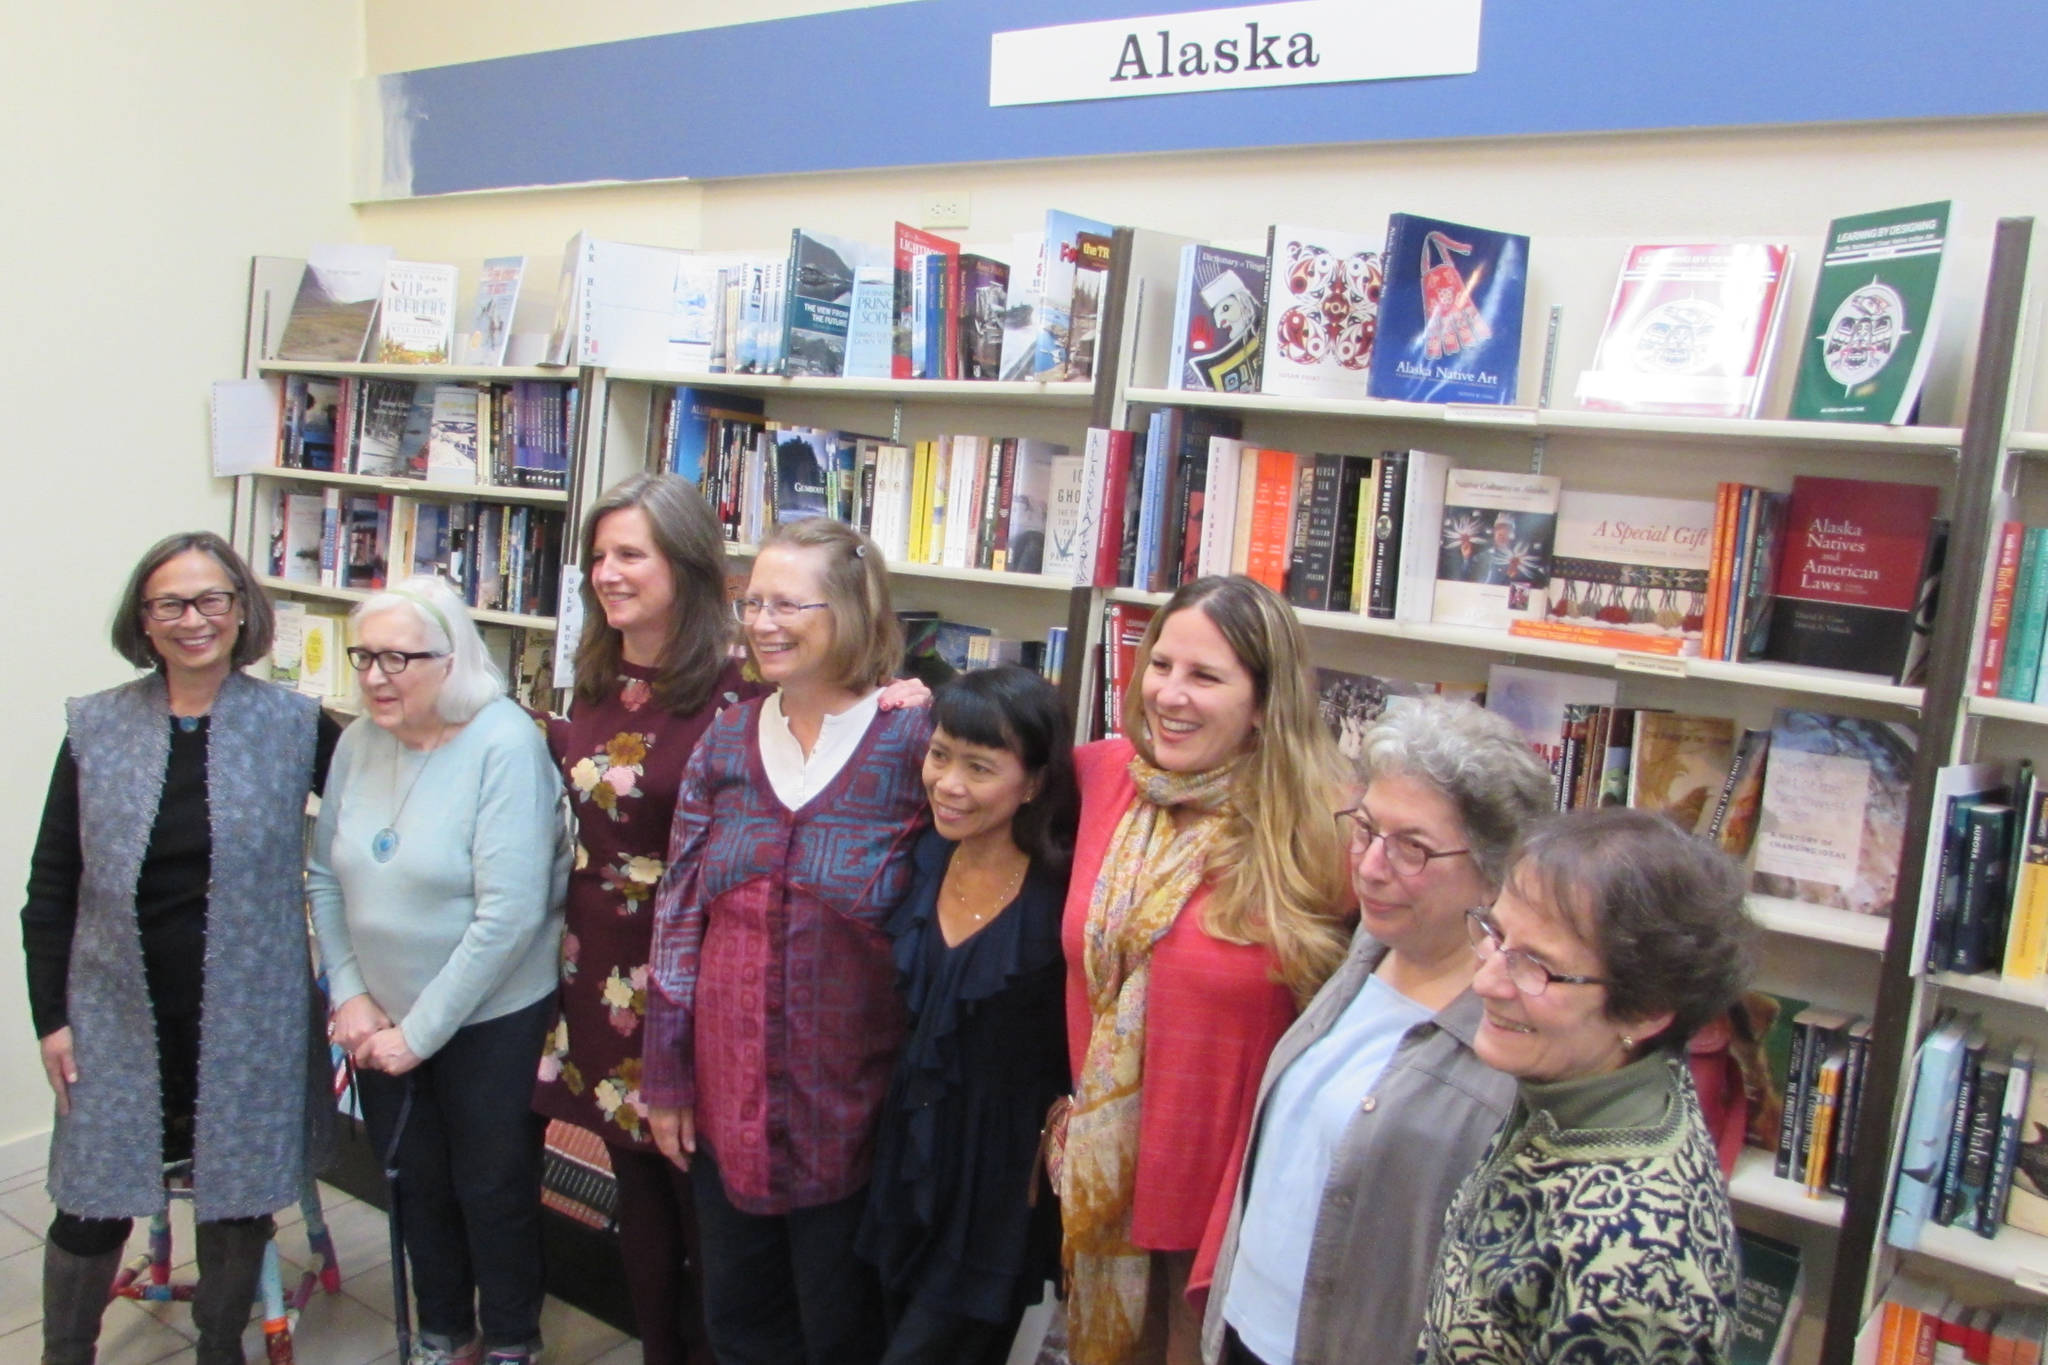 Alaska Women Speak President Carmen Davis stands with writers Mary Lou Spartz, Katie Bausler, Kate Boesser, Miriam Wagoner, Amy Pinney, Margo Waring and Dianne DeSloover at a poetry and prose reading at Hearthside Books in Nugget Mall. (Ben Hohenstatt | Capital City Weekly)